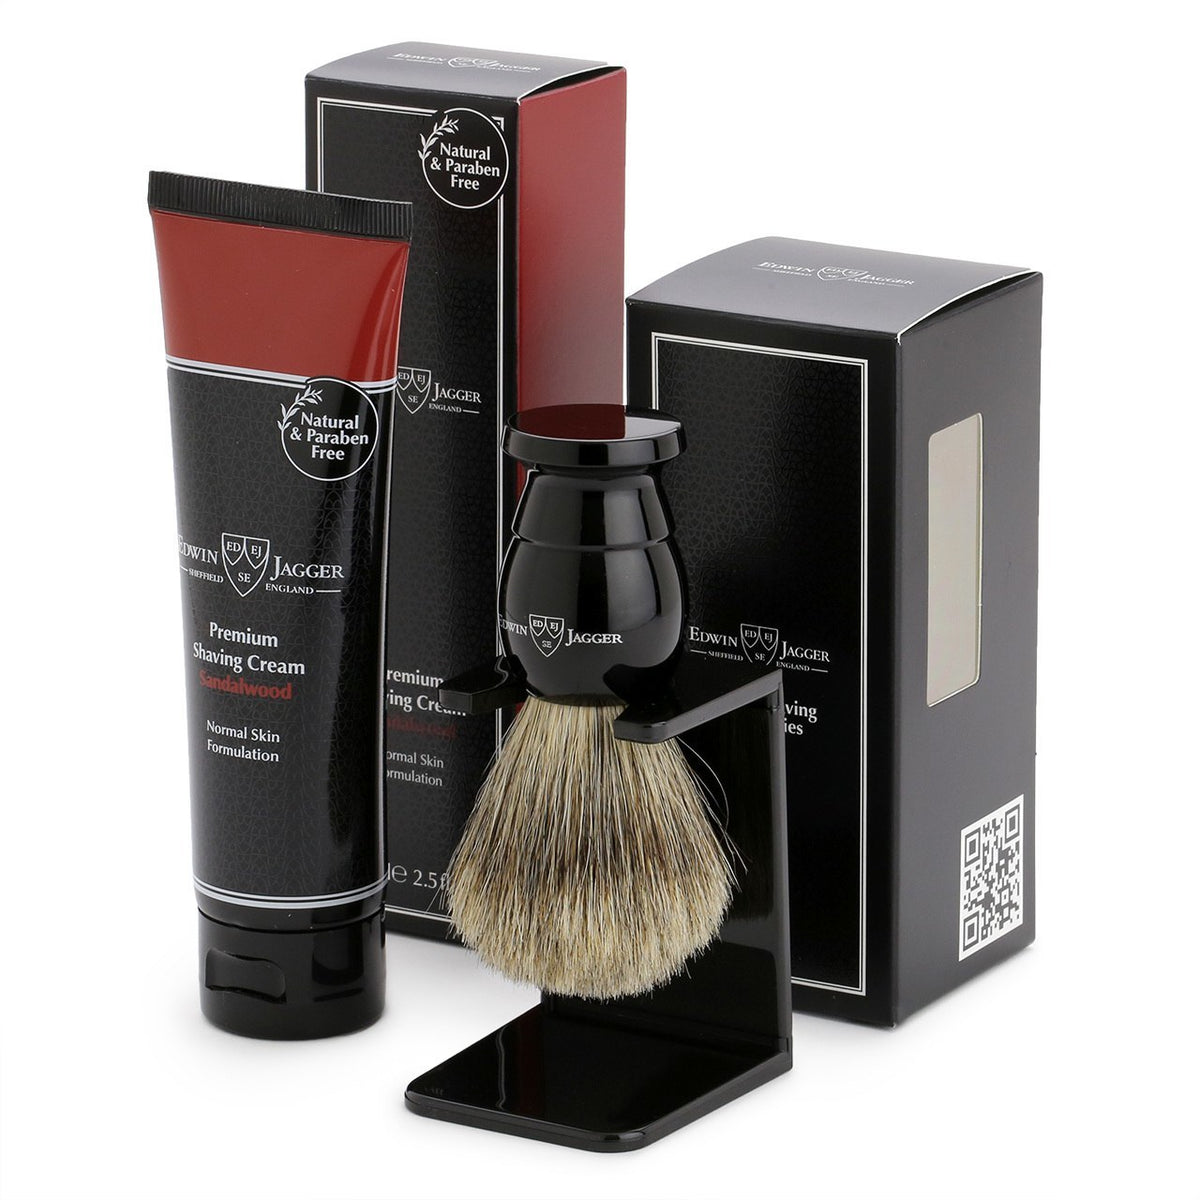 Edwin Jagger Imitation Ebony Shaving Brush & Sandalwood Shave Cream Gift Set